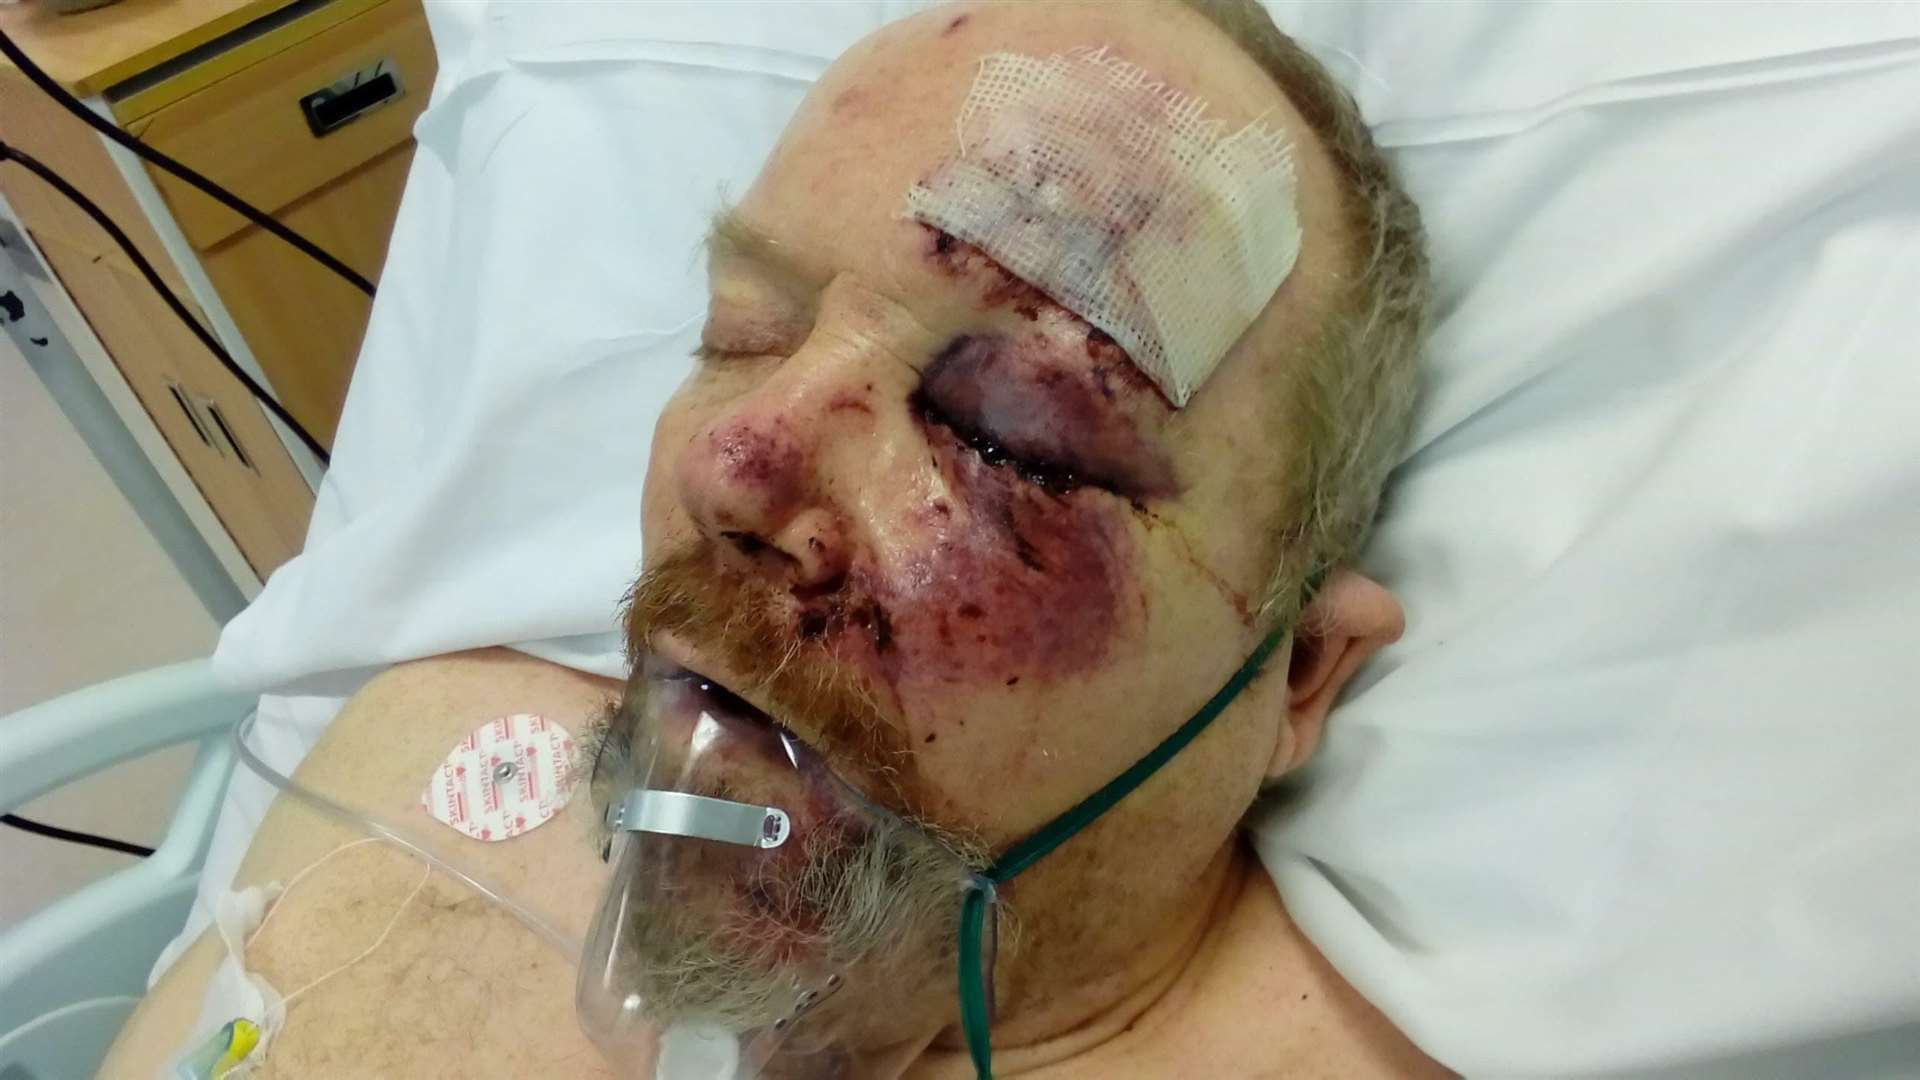 Vince Marsh suffered serious injuries (3536634)